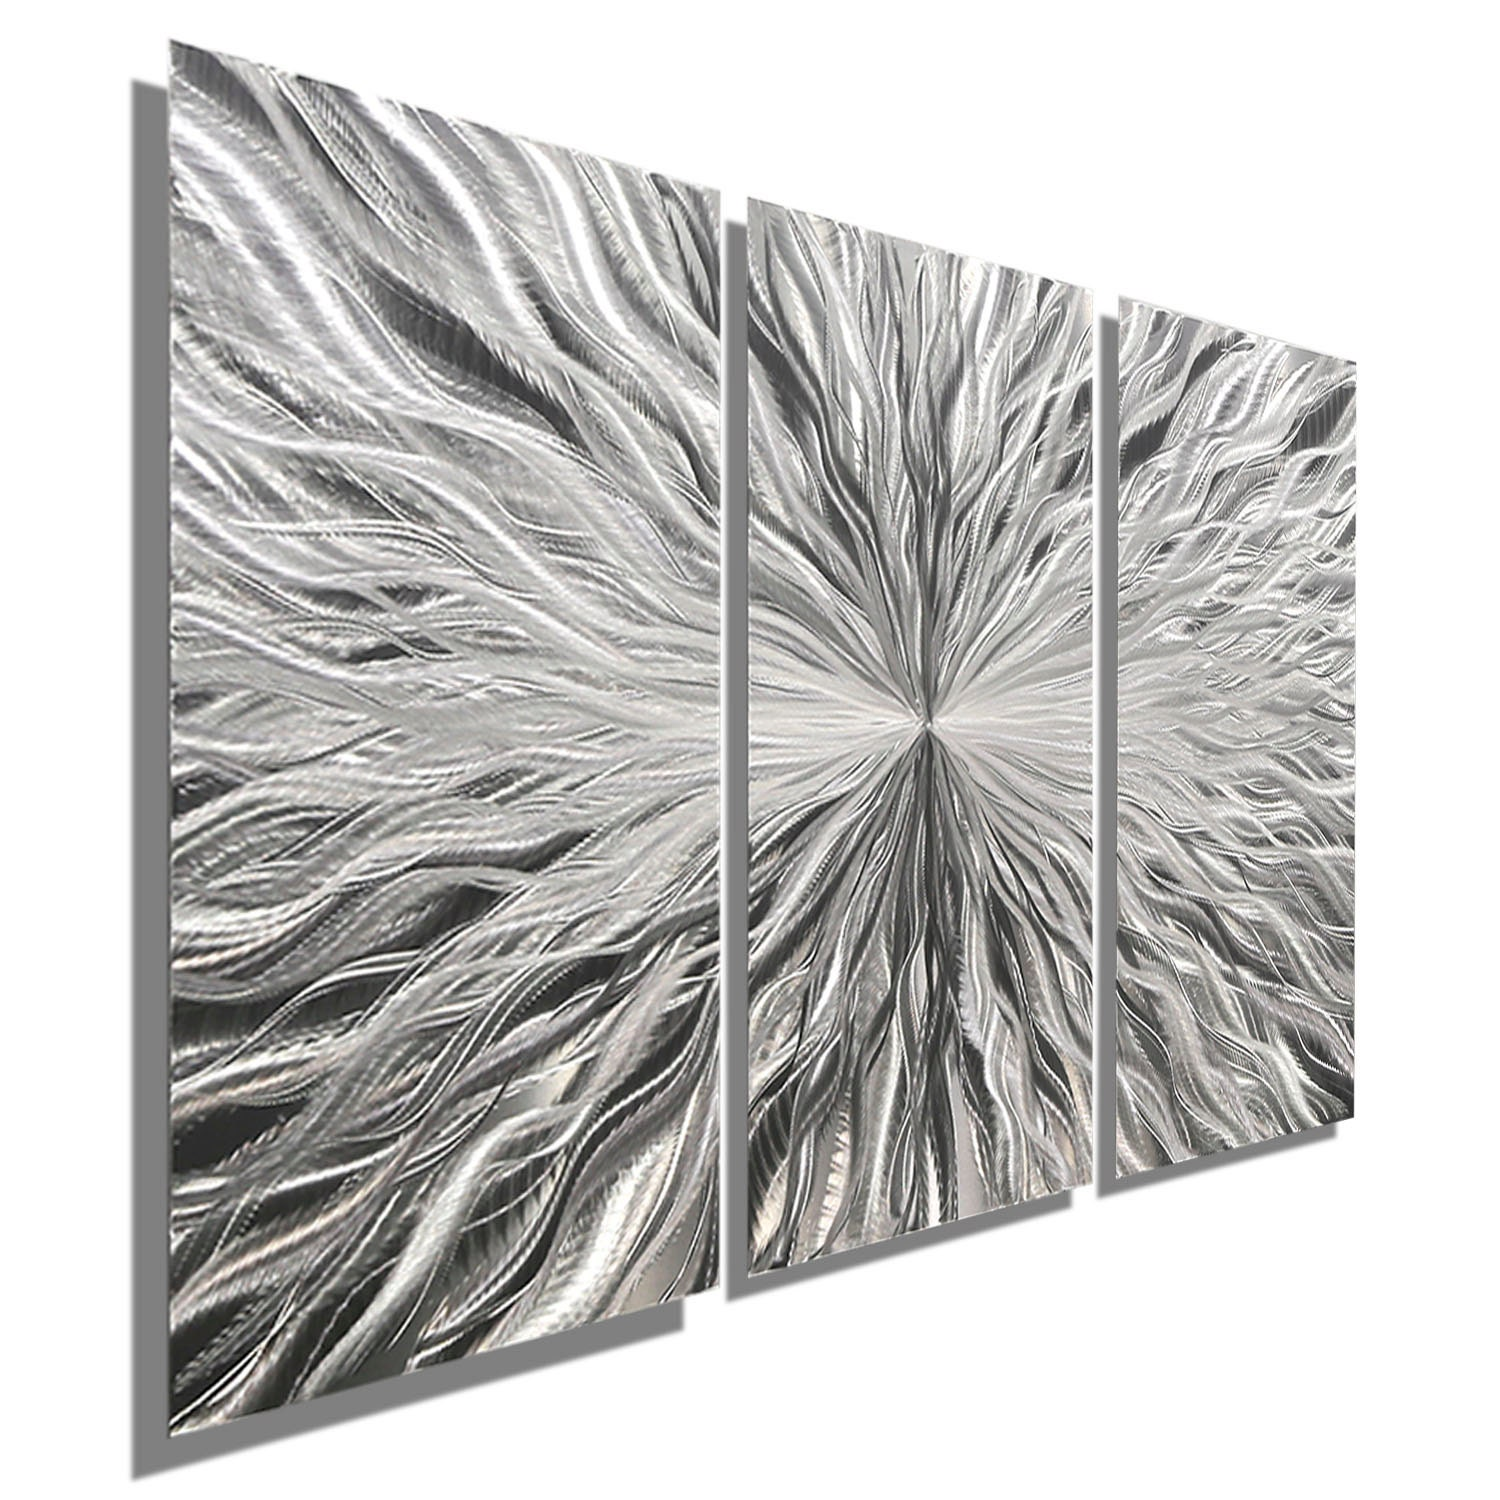 Multi Panel Silver Metal Wall Art Decorative Modern Metal